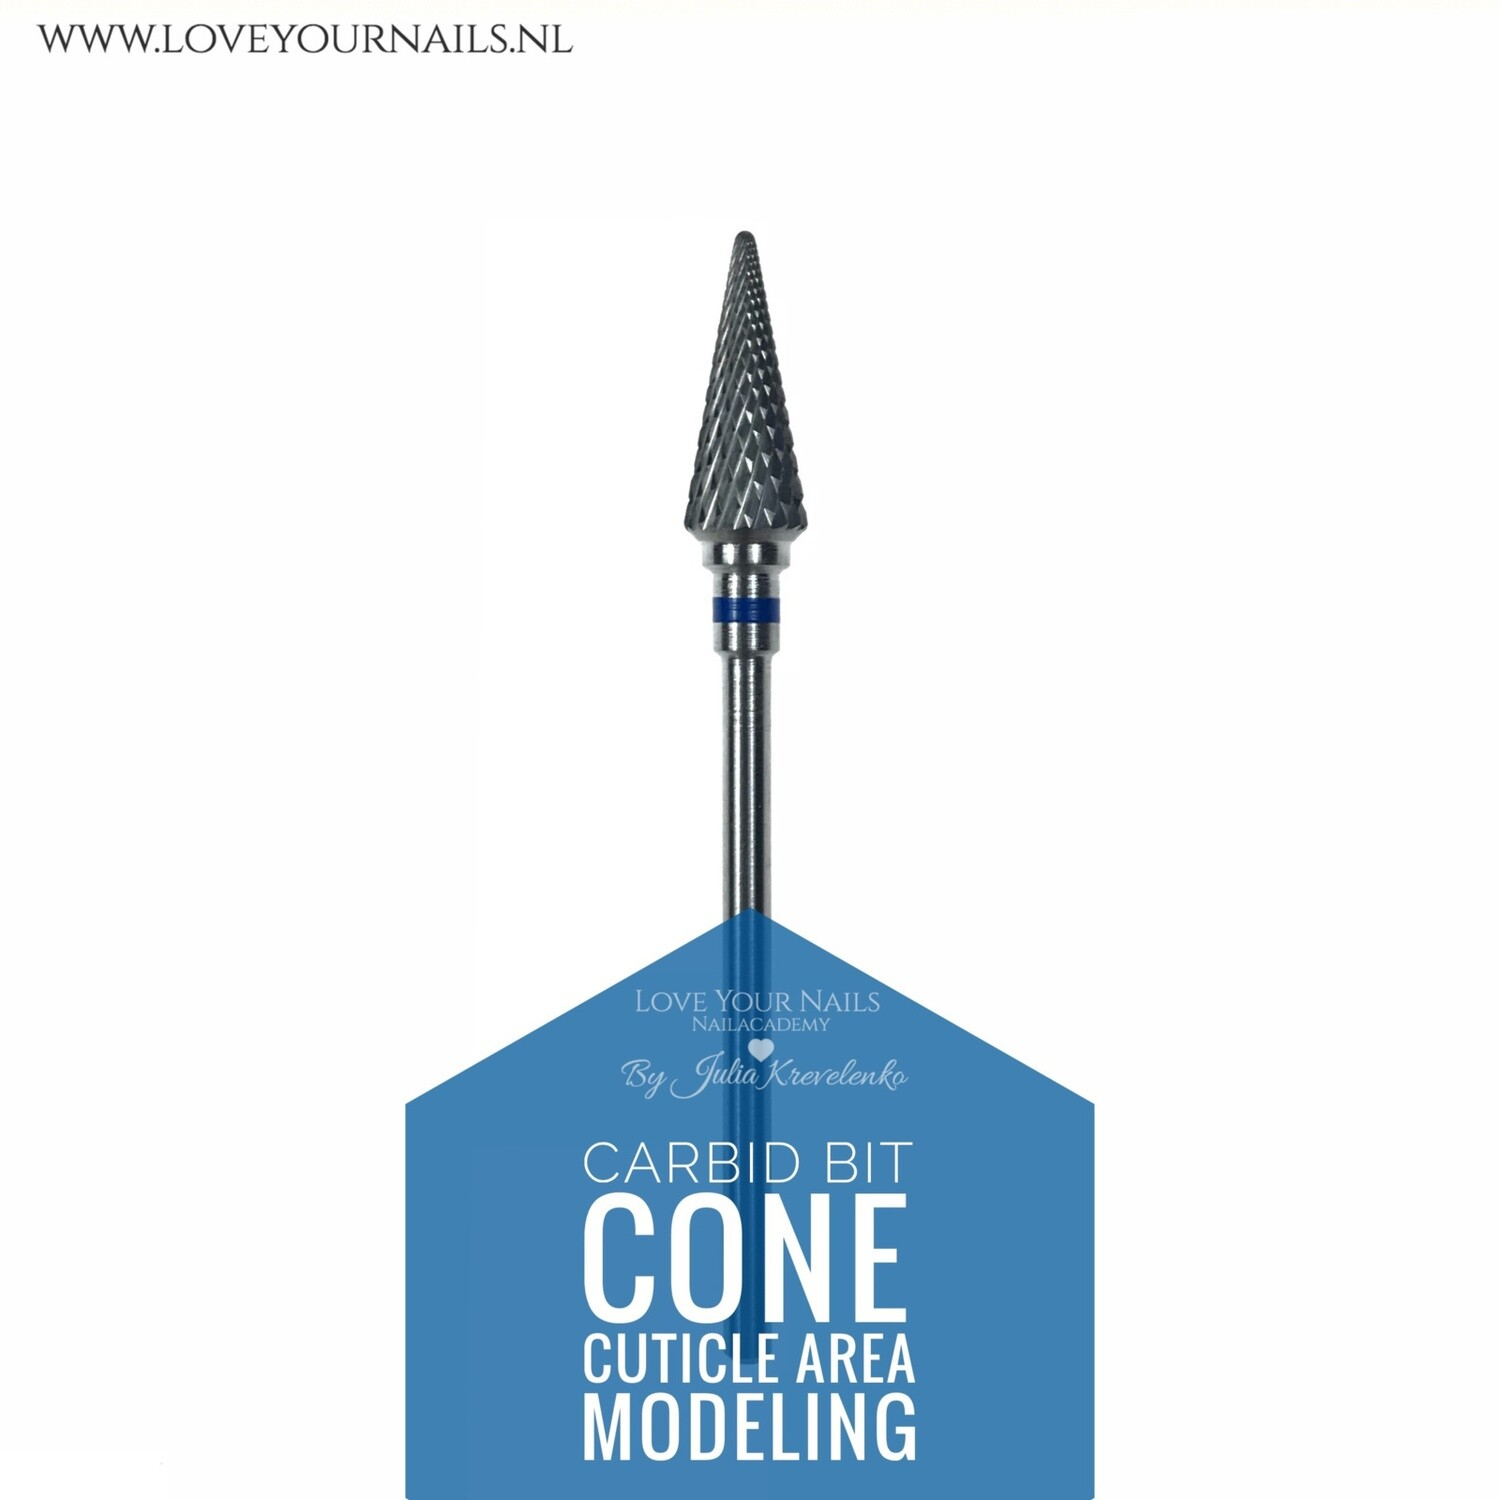 Carbid cone for c-curve and cuticle area - medium